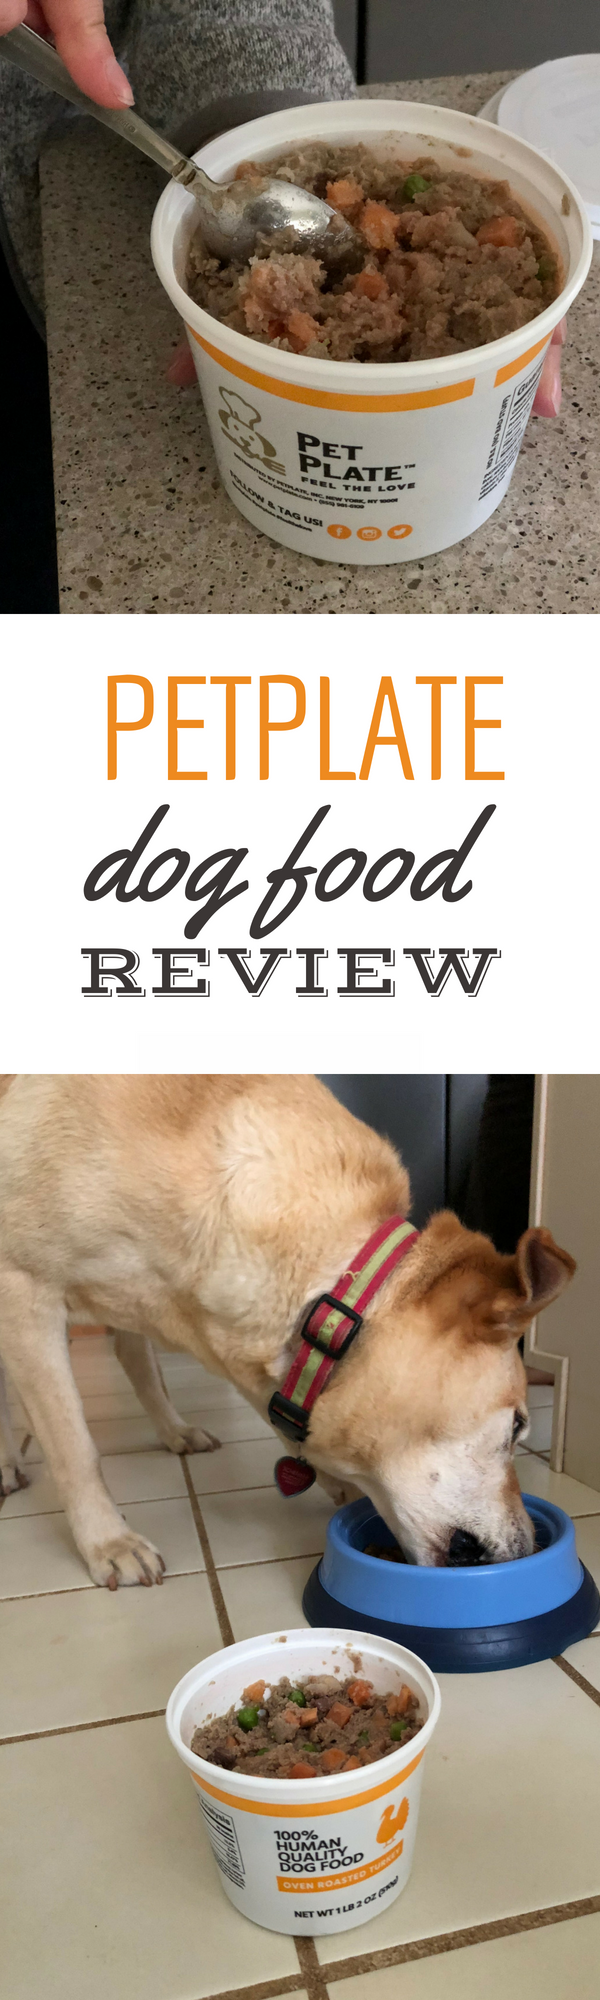 Pet Plate Reviews Tails Will Wag For This Dog Food